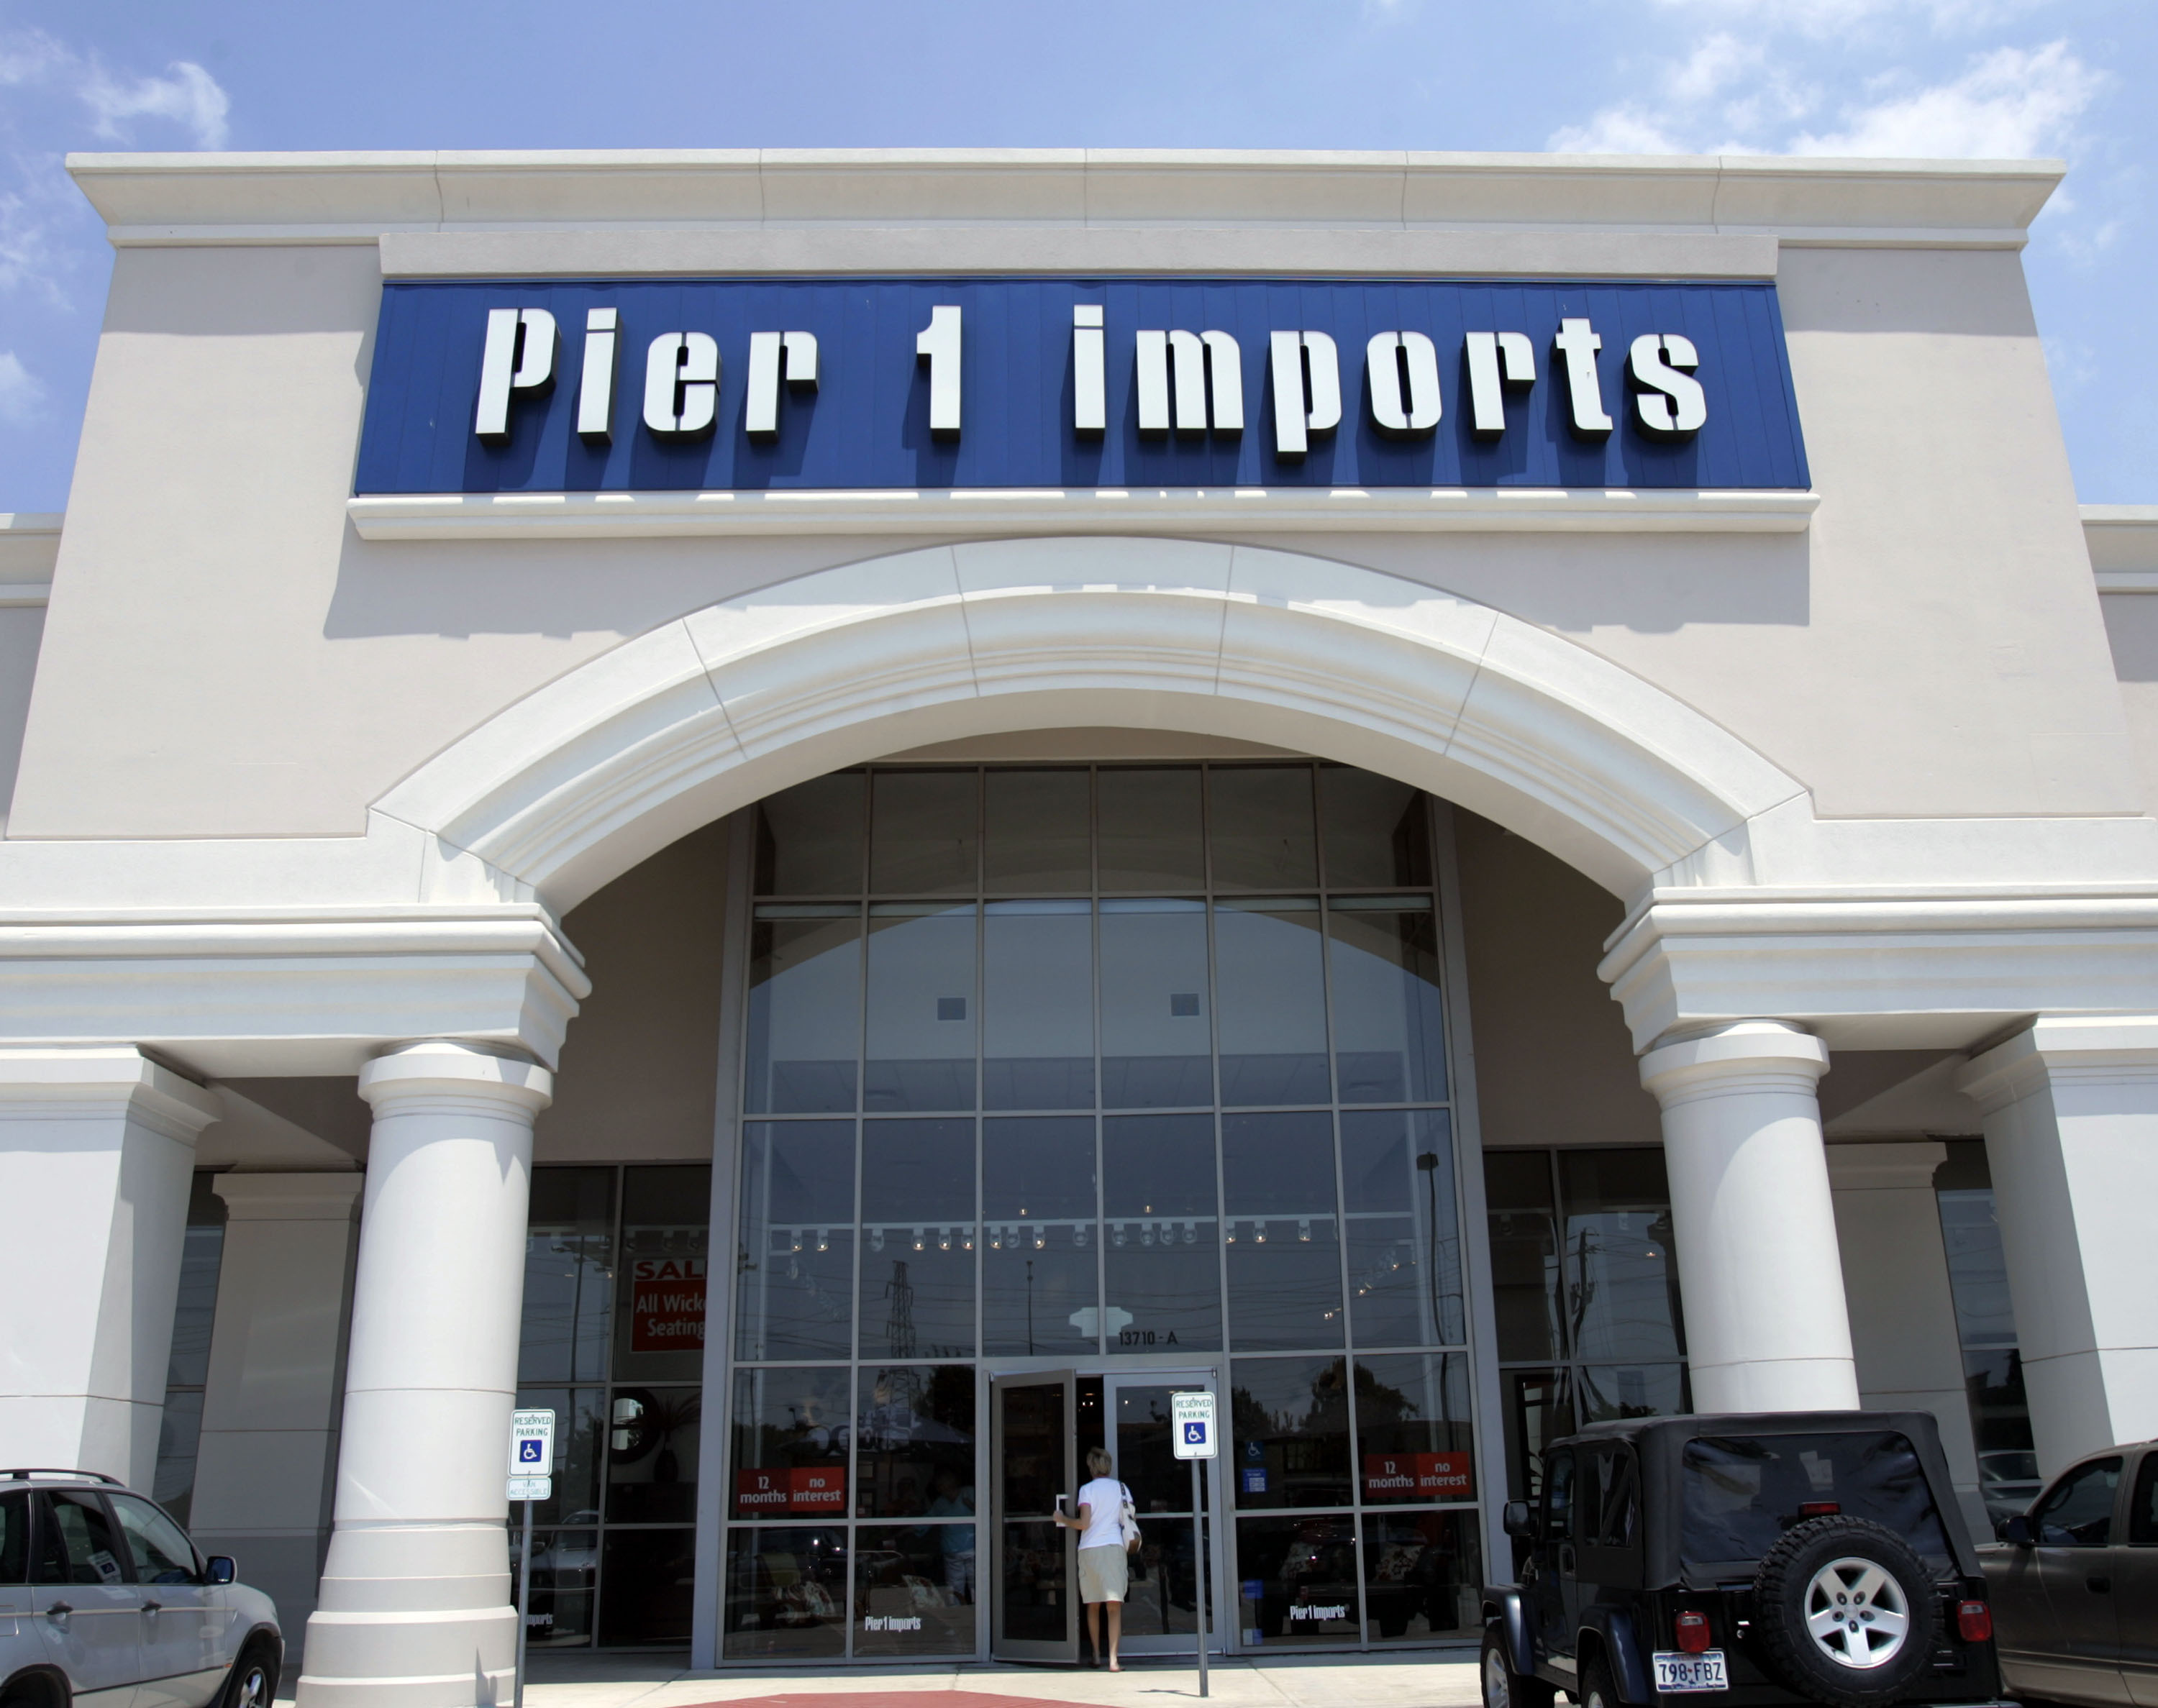 Pier 1 Imports is closing nearly half its 942 stores as it struggles to draw consumers and compete online, the home decor company said Monday.